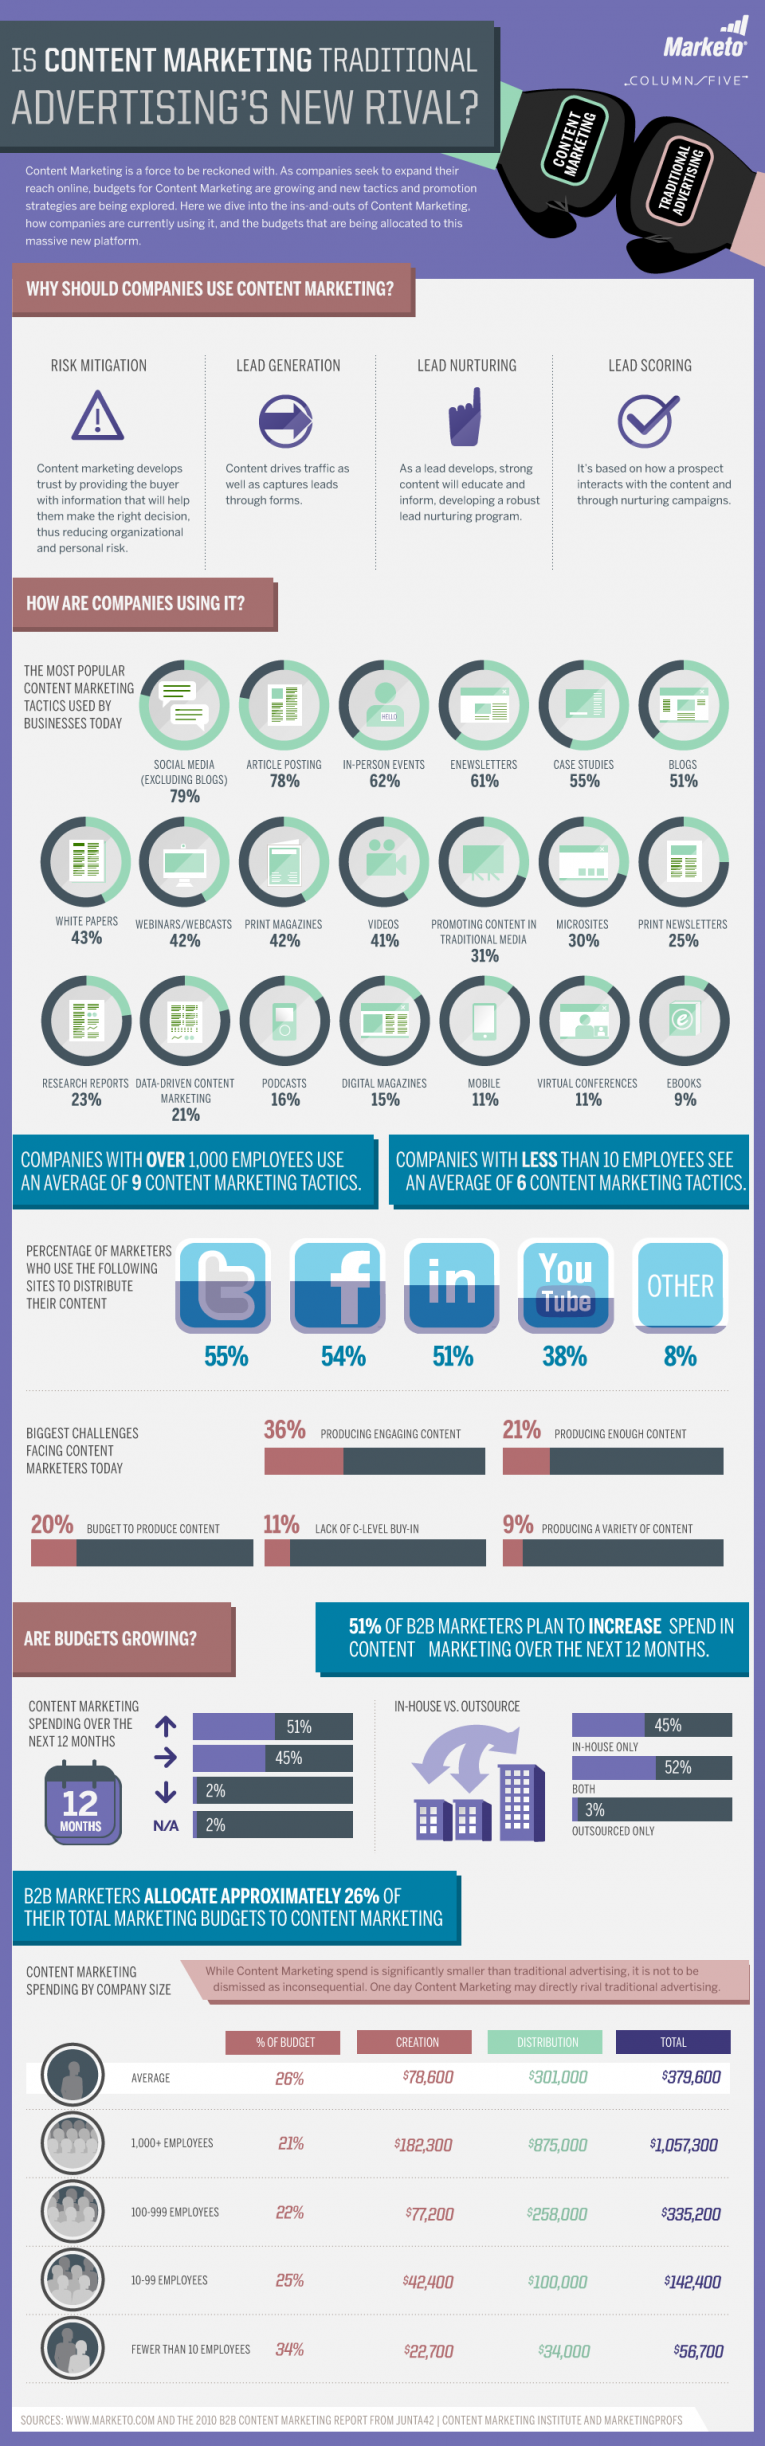 79% Of Brands Use Social Media For Content Marketing [INFOGRAPHIC]